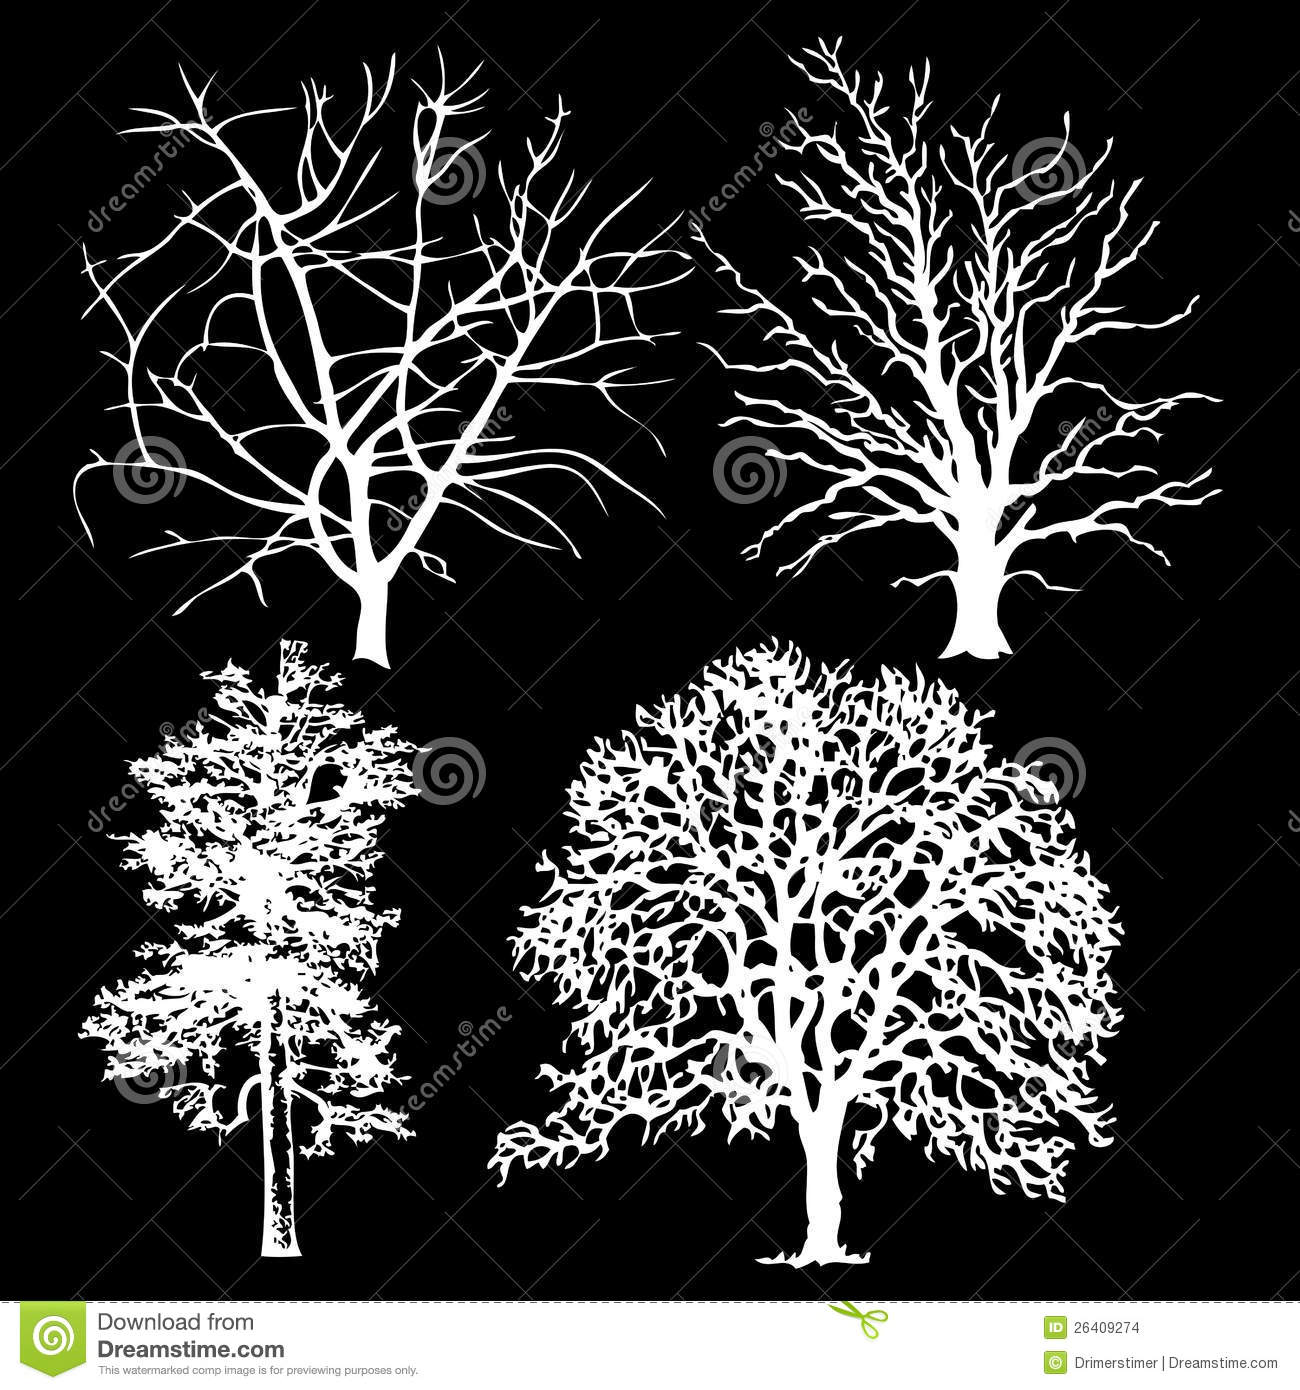 together with White Trees Black Background furthermore Spiral Pattern as well Greek Key Black Border Vector Sets likewise Sticker X Bg Ffffff U. on spiral black border